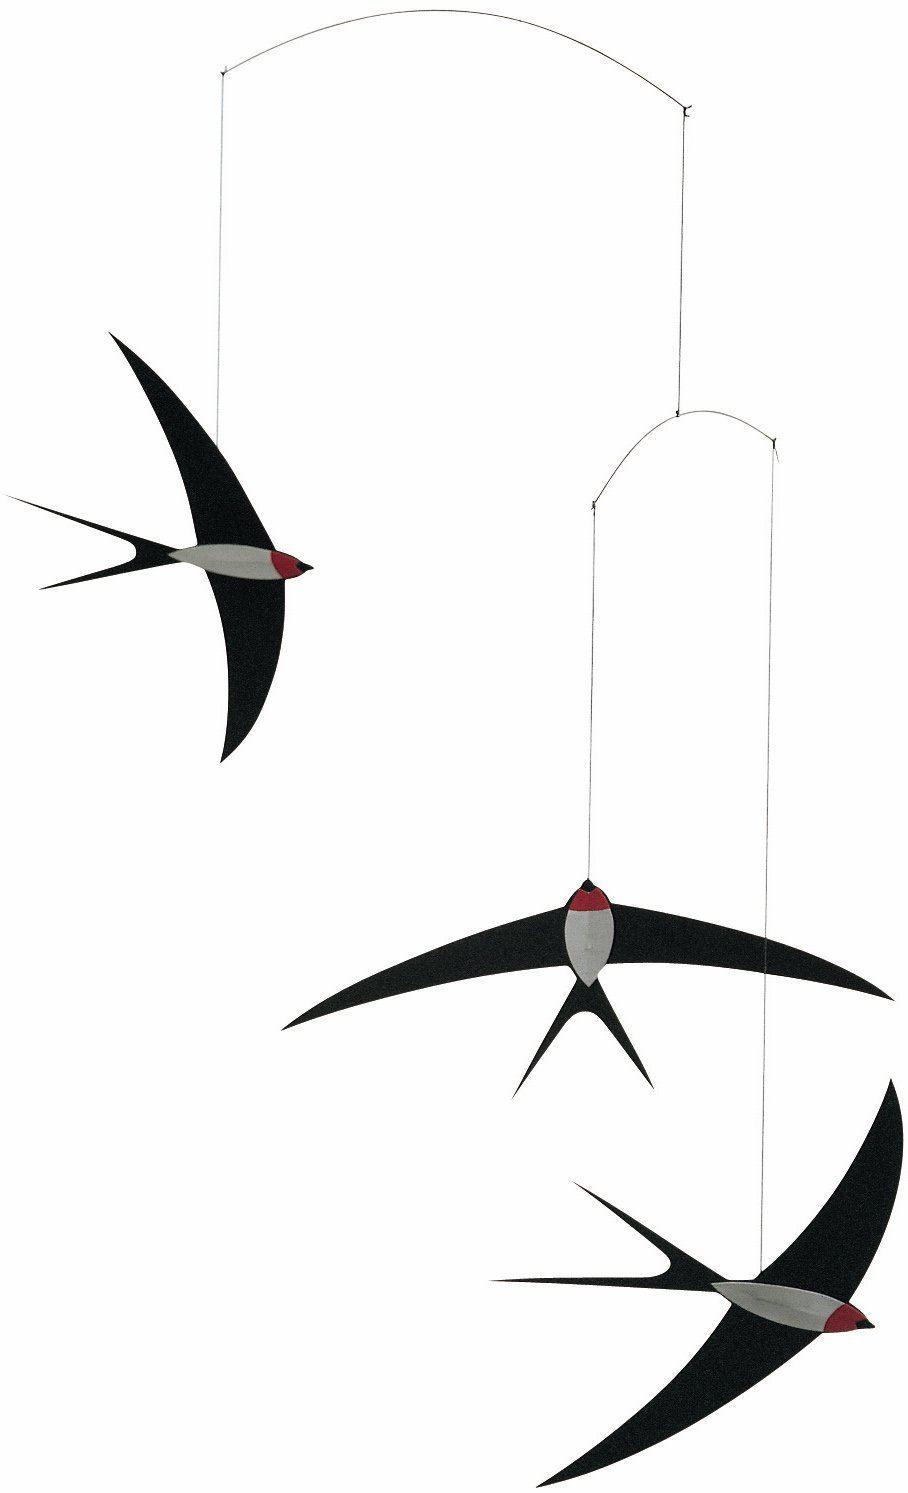 Flensted Mobiles 3 Swallow Hanging Mobile - 20 Inches Cardboard by Flensted Mobiles